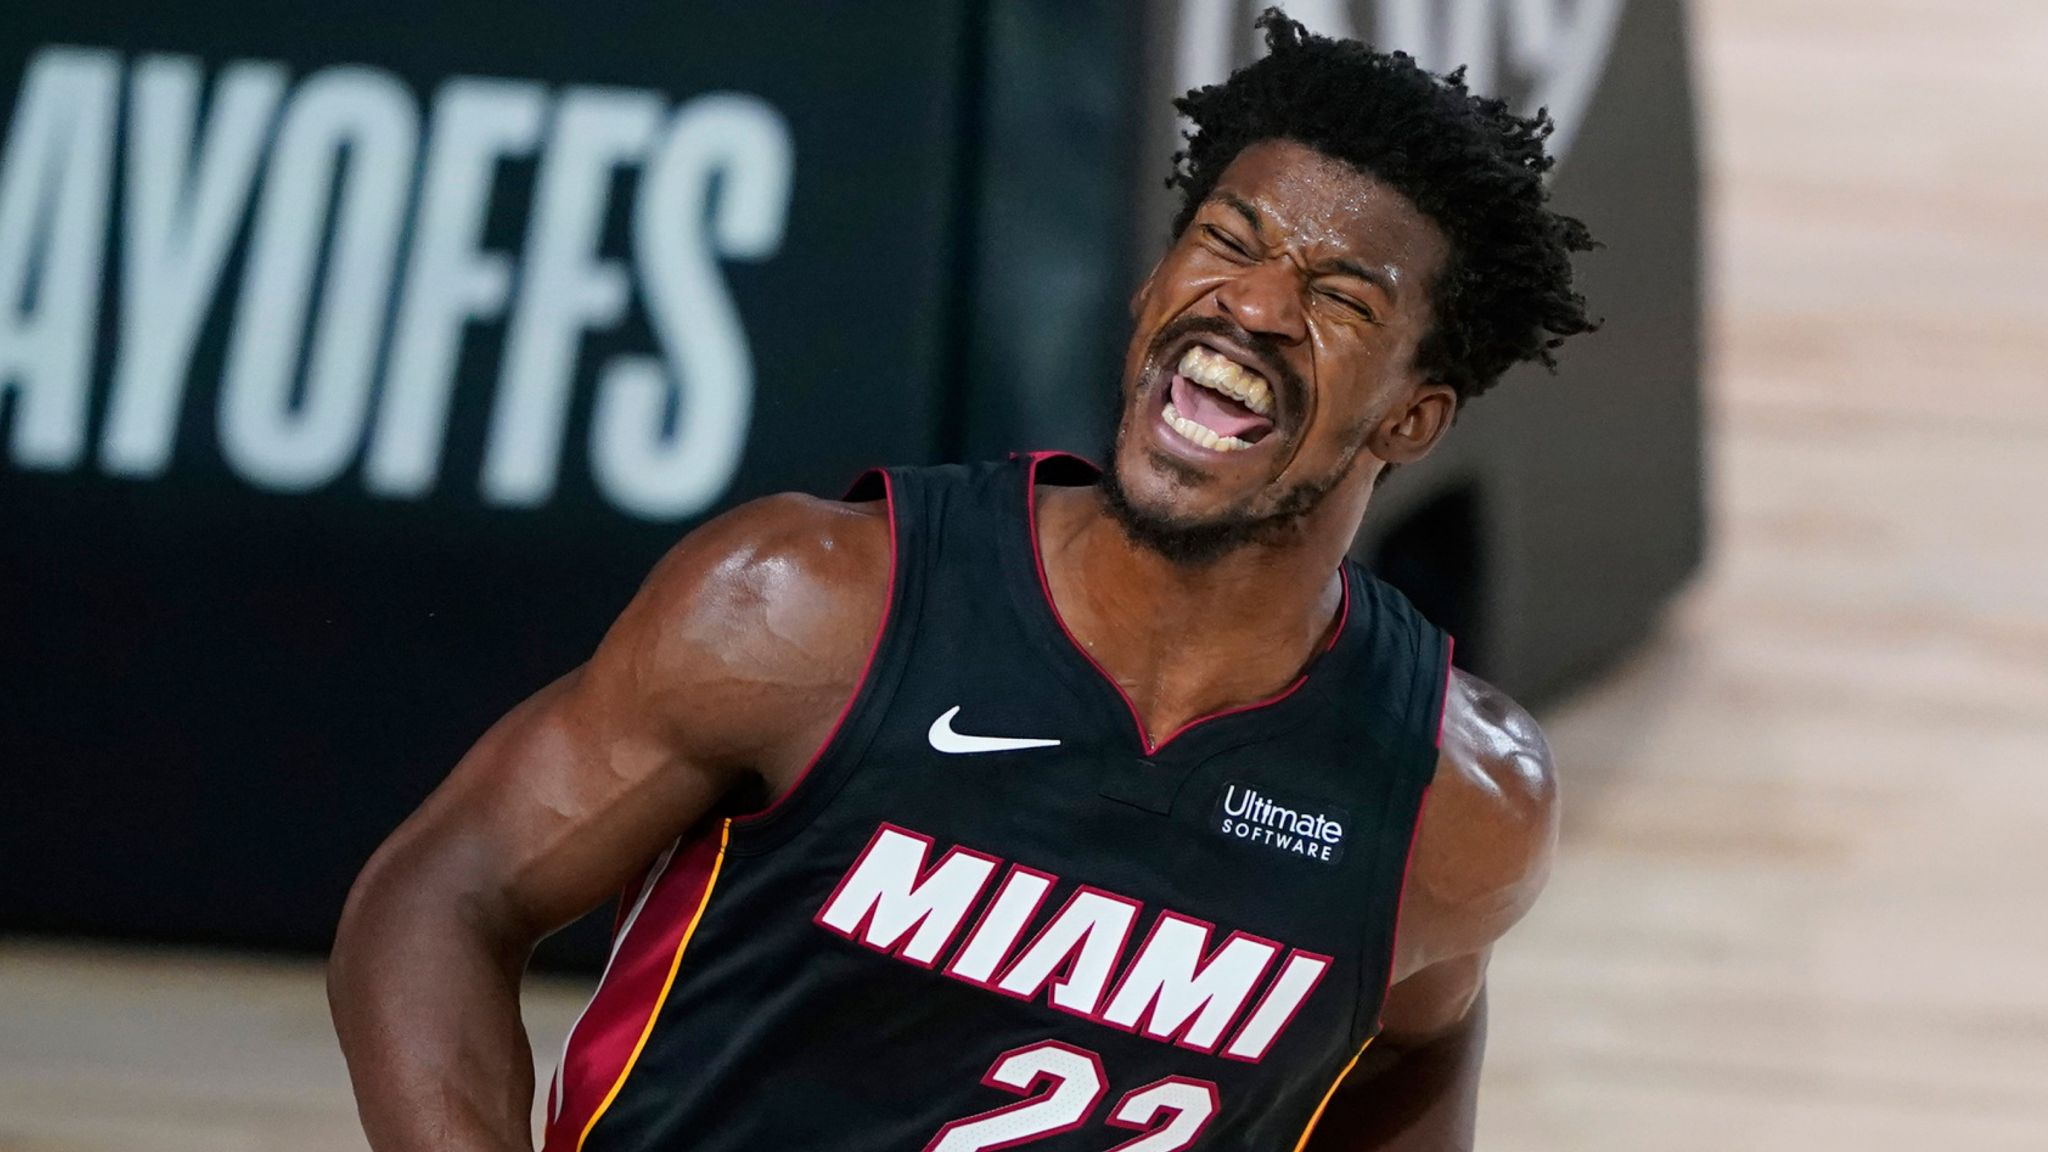 Jimmy Butler celebrates after throwing down a dunk in the Heat's Game 1 win over the Pacers